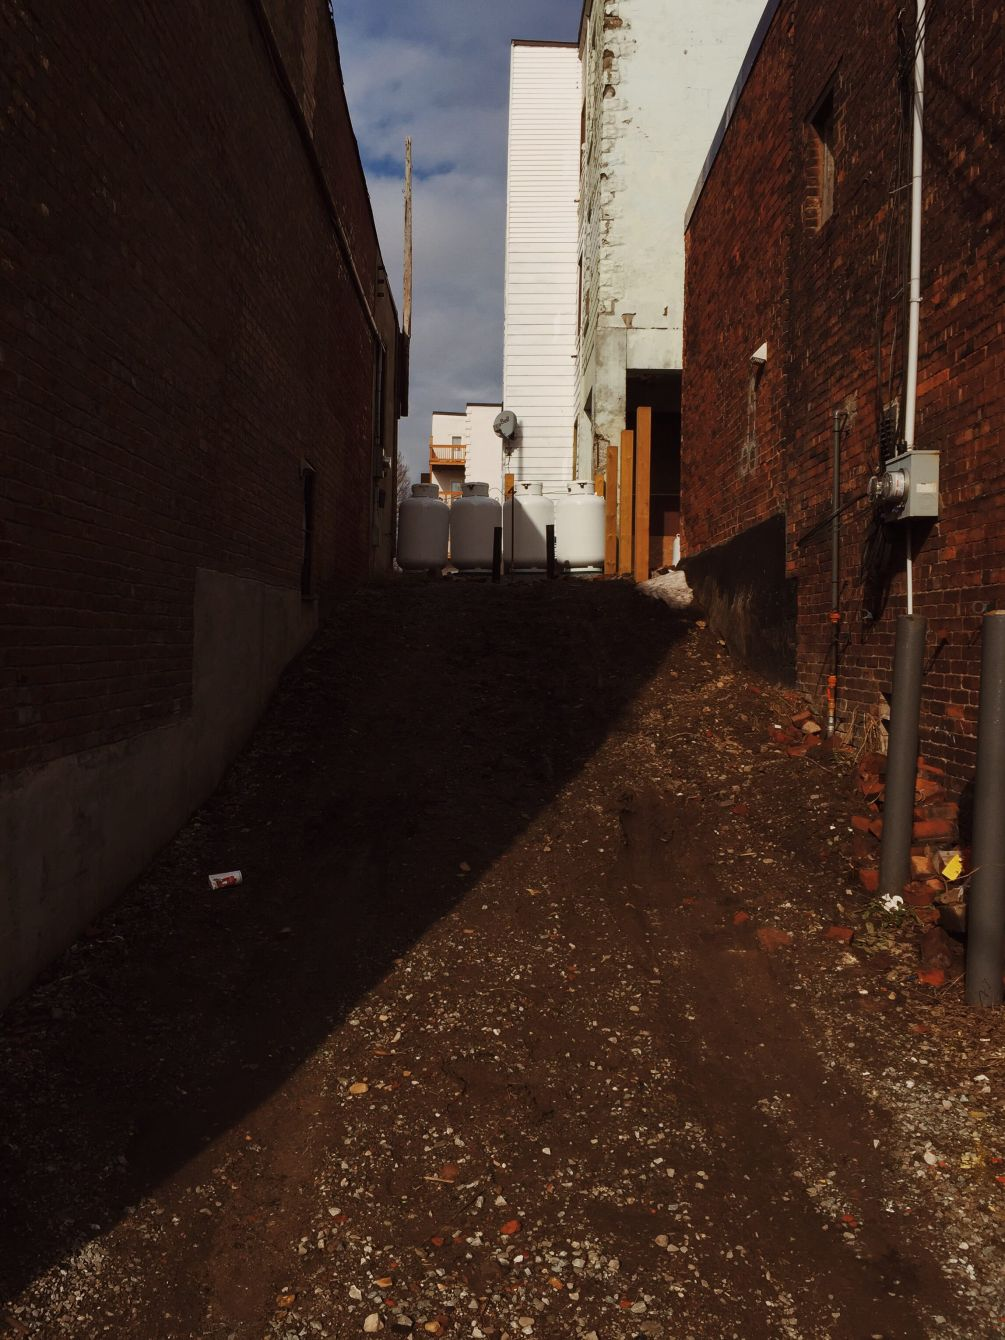 Click thumbnail to see details about photo - Propane Tanks in Alleyway Photograph